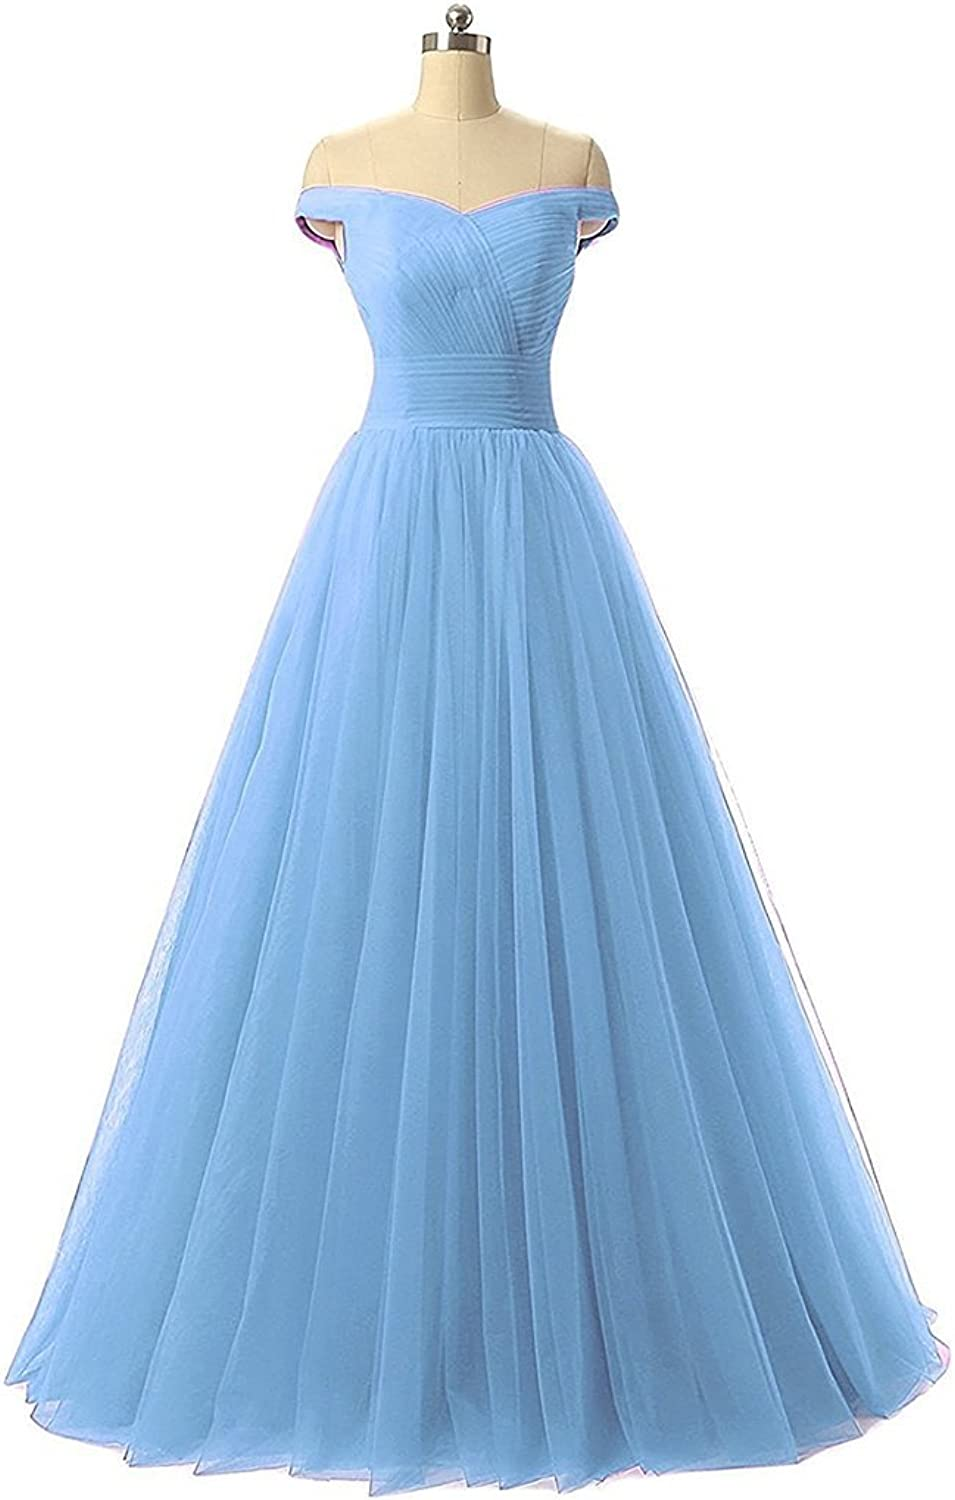 Yc Women's Aline Tulle Bridesmaid Dresses Long Evening Party Prom Dresses